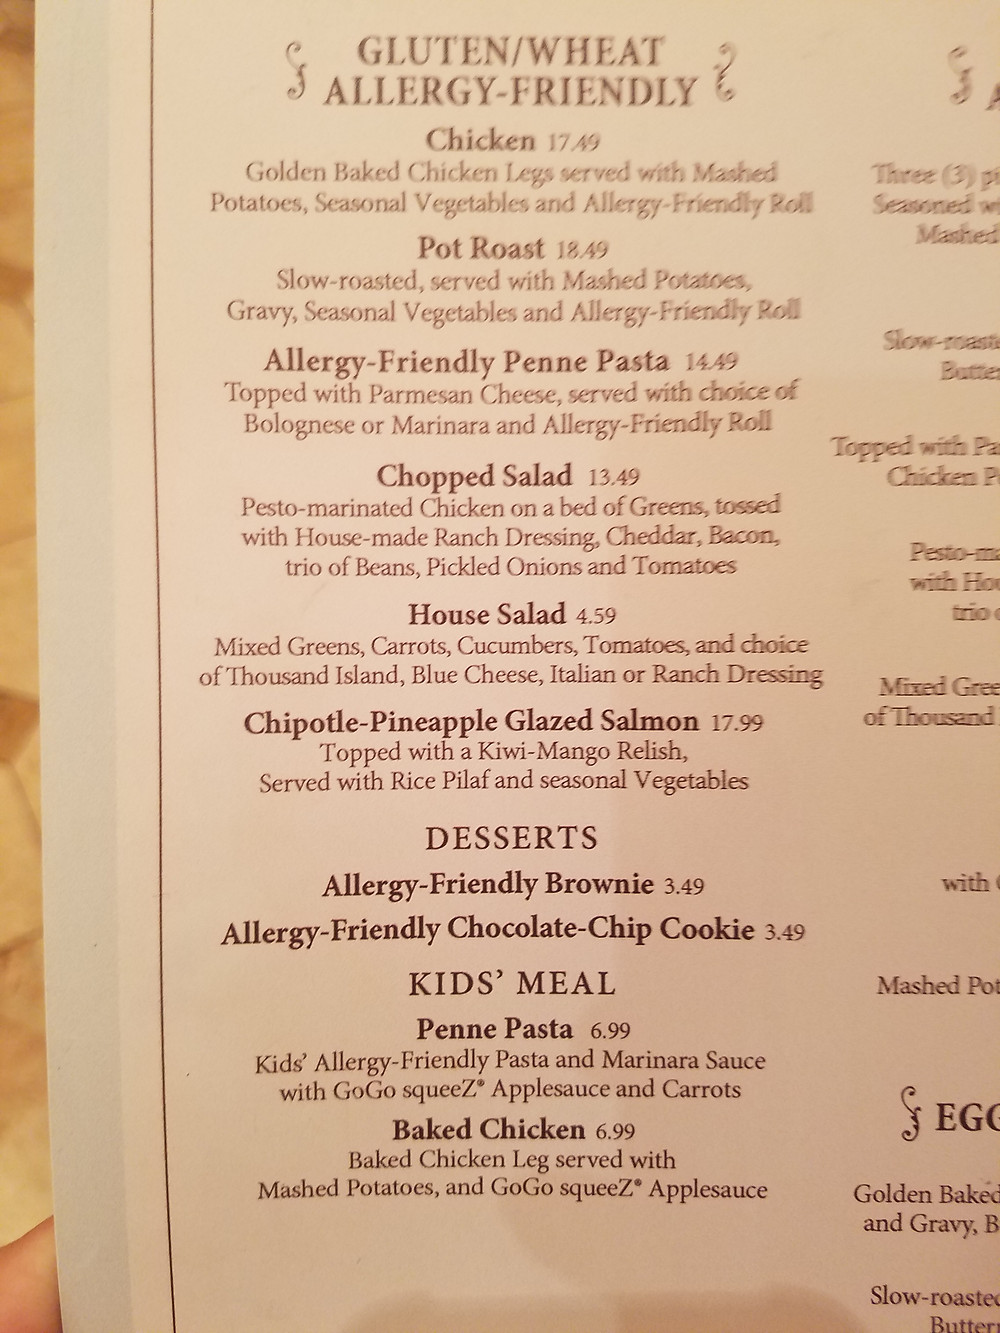 Plaza Inn Allergy-friendly menu page 2